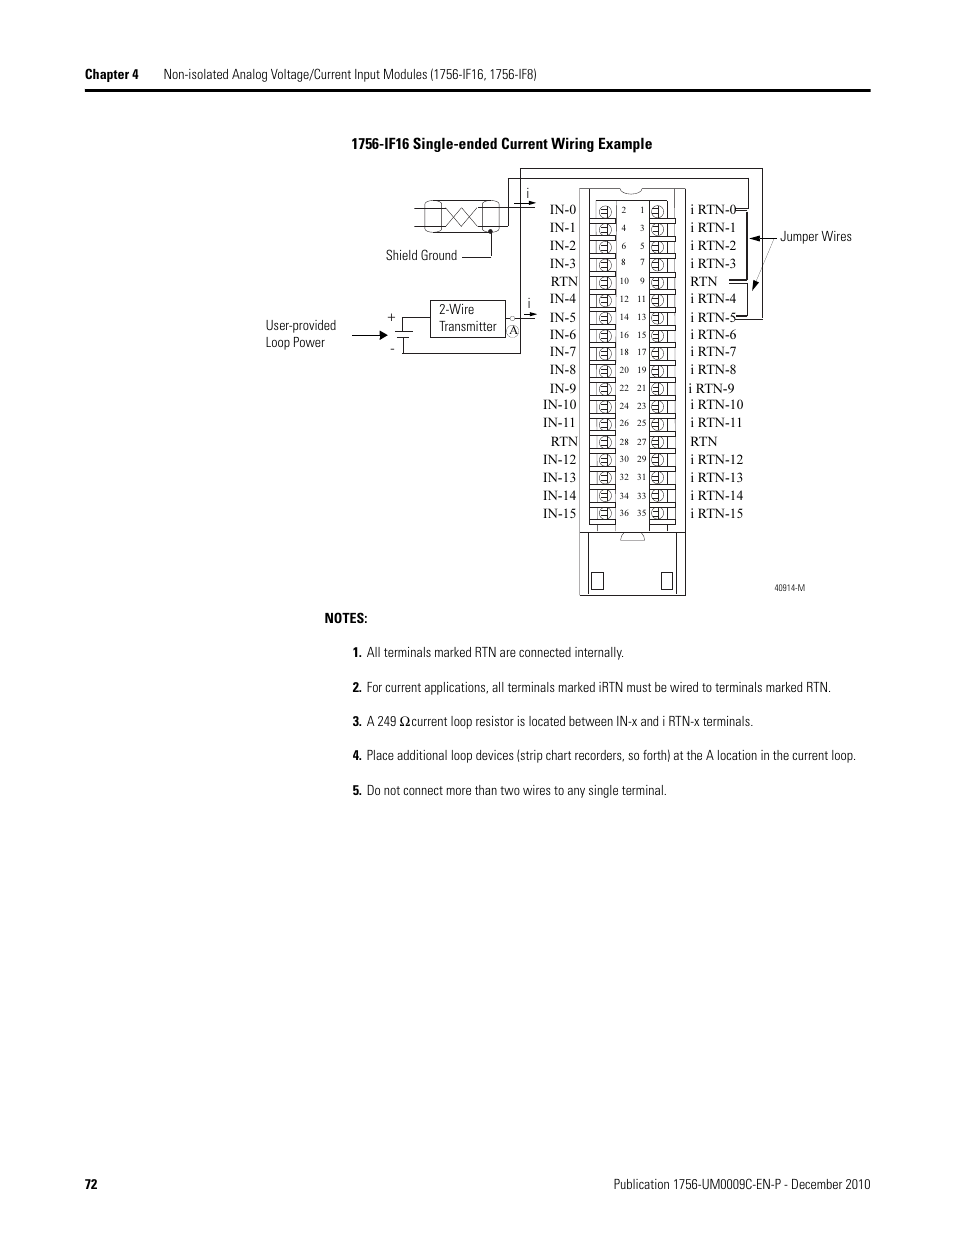 rockwell-automation-1756-x-controllogix-analog-i_o-modules-page72  If Wiring Diagram on light switch wiring diagram, 1756-it6i wiring diagram, 1756-ib16 wiring diagram, slc 500 wiring diagram, 1756-of8 wiring diagram, 1756-if8 wiring diagram,